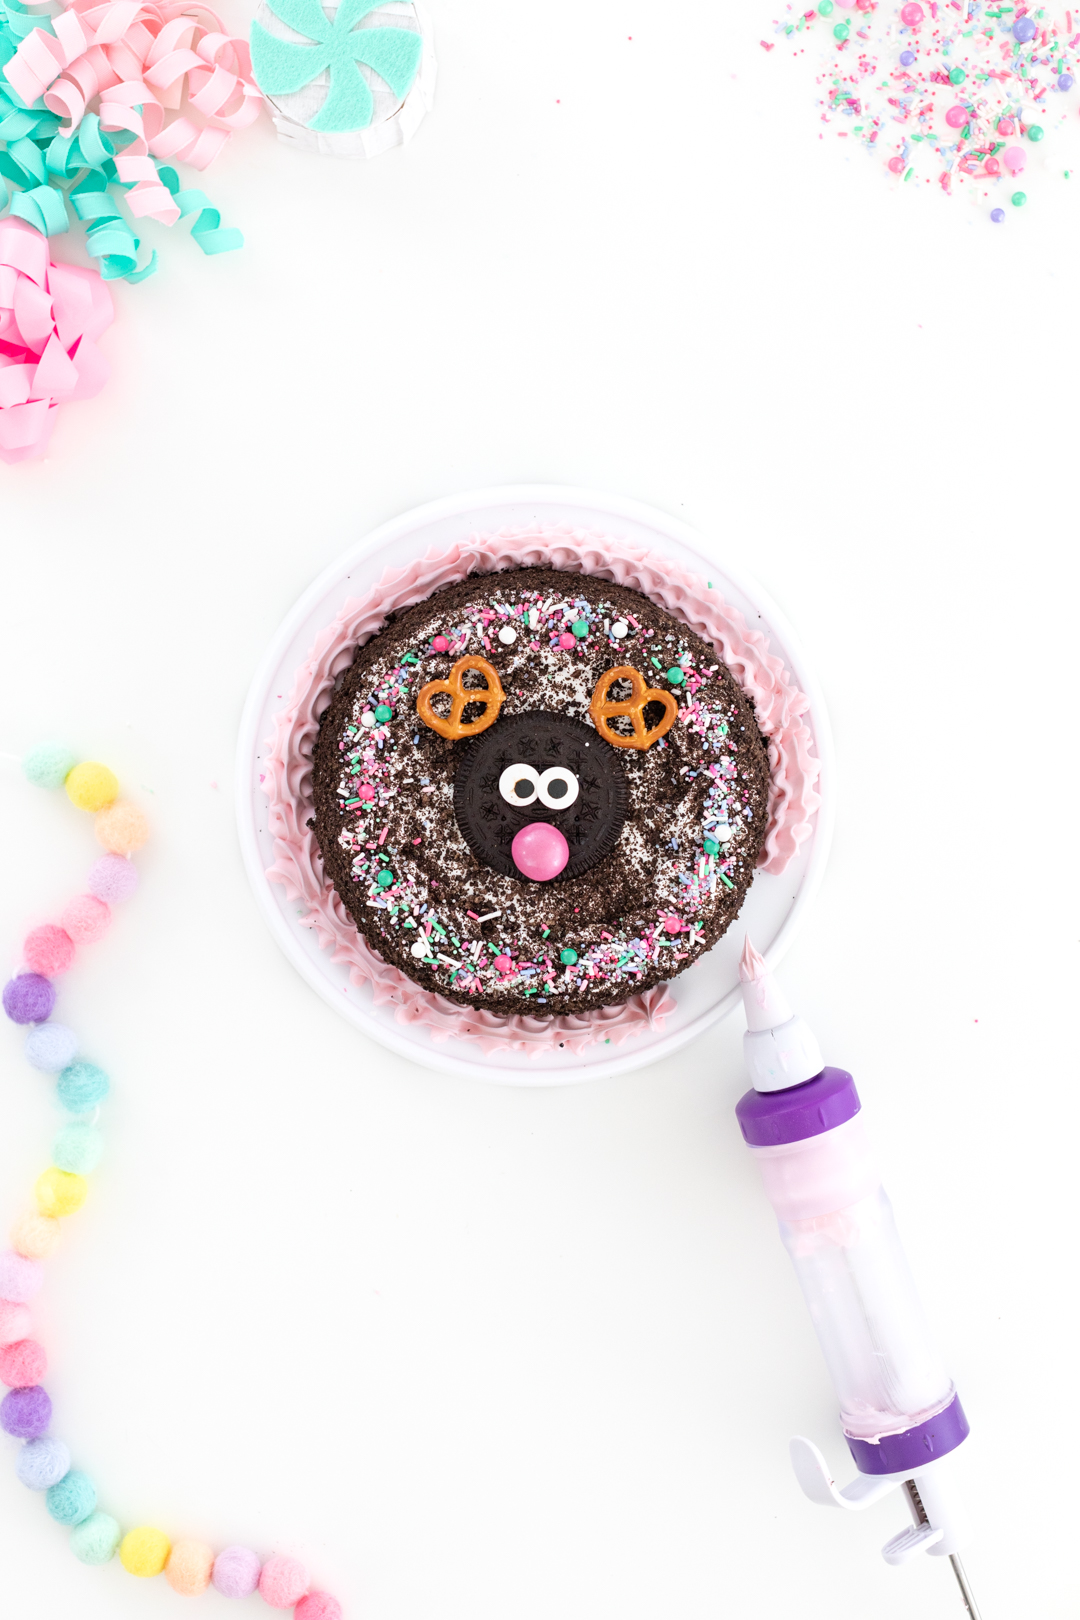 reindeer ice cream cake with gum nose and pink frosting